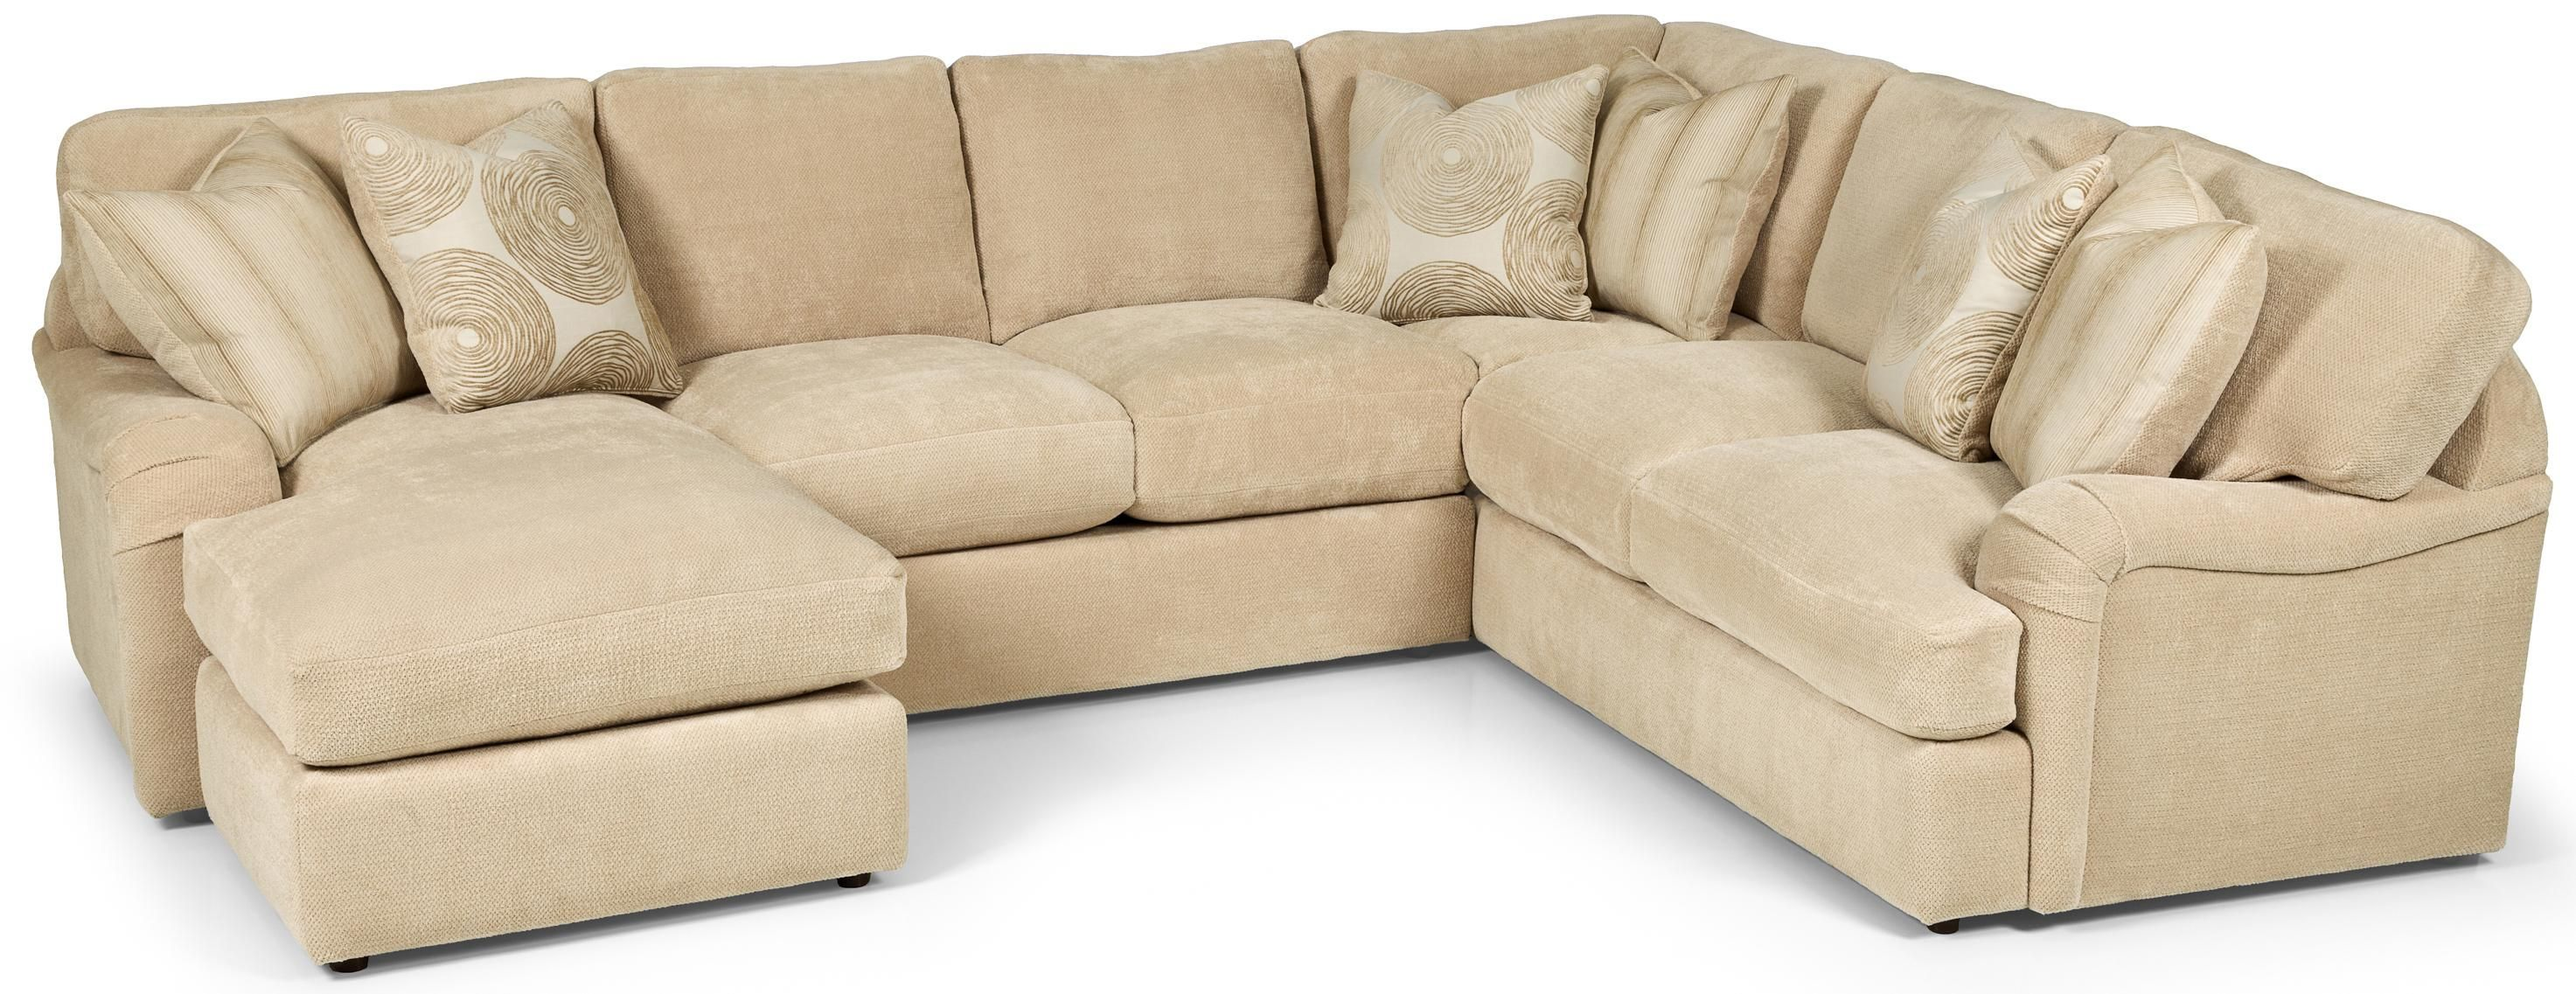 THE most comfortable couch I've ever sat on! | Home ...